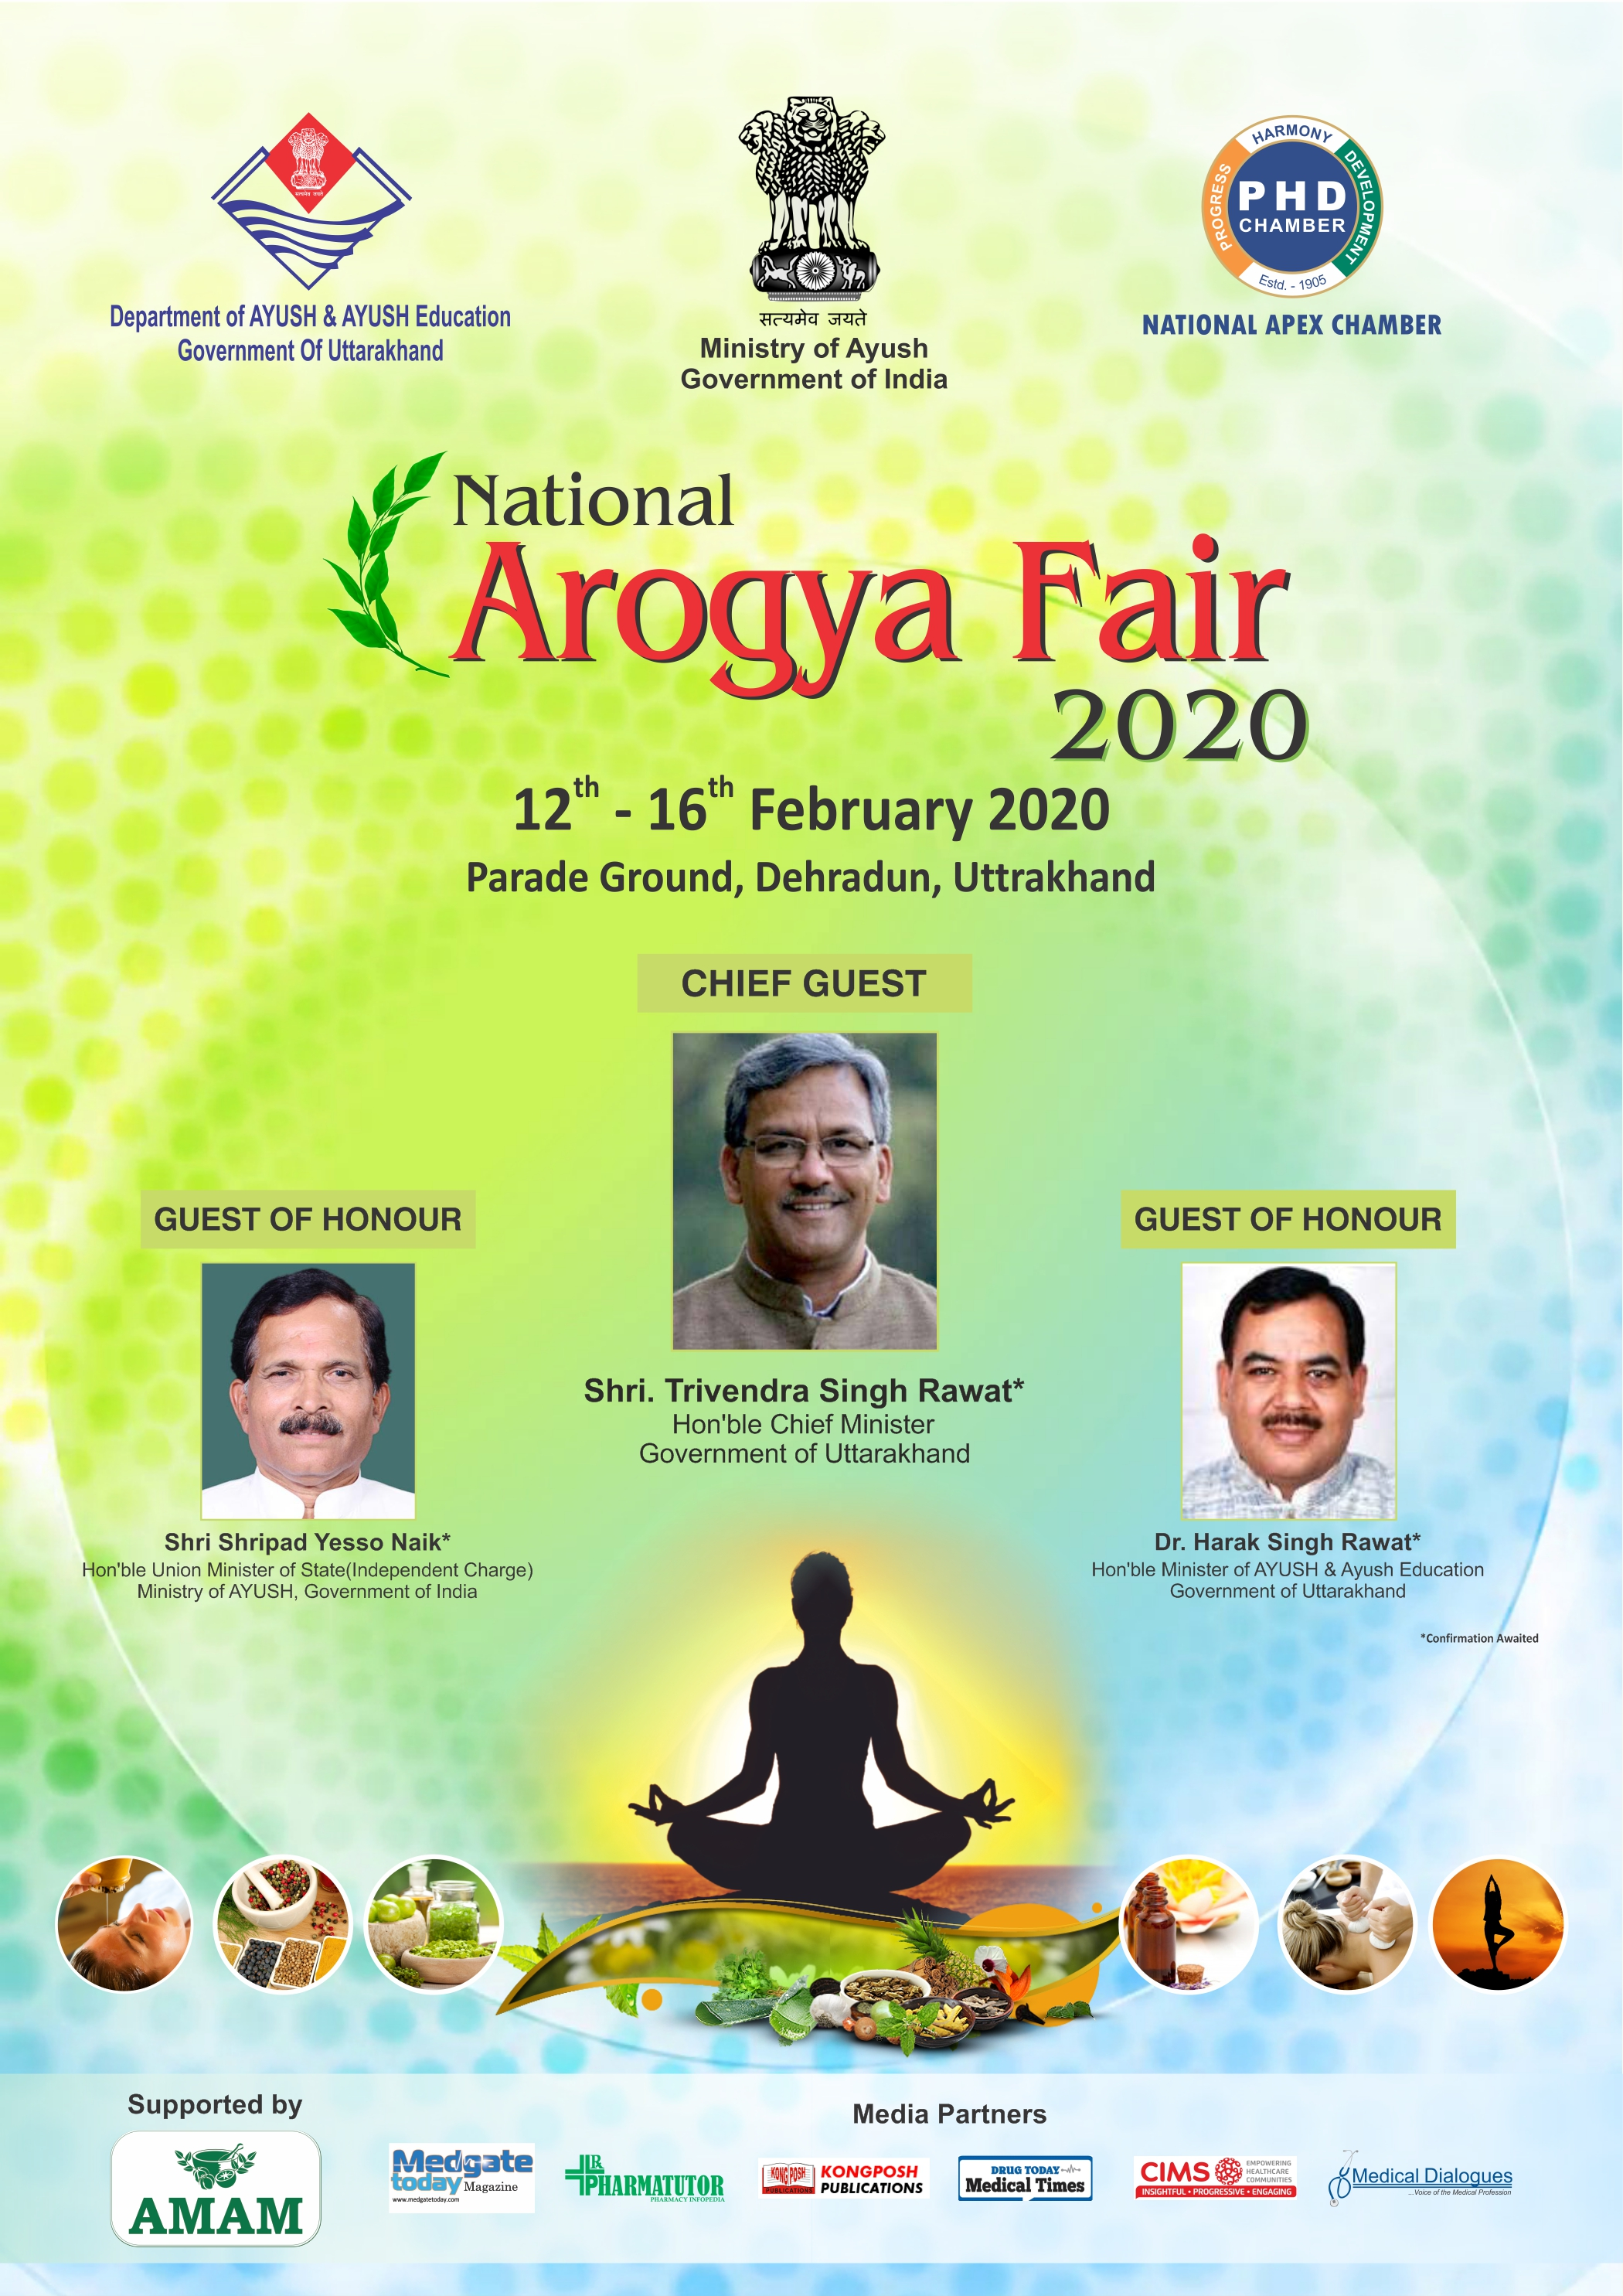 National Arogya Fair 2020